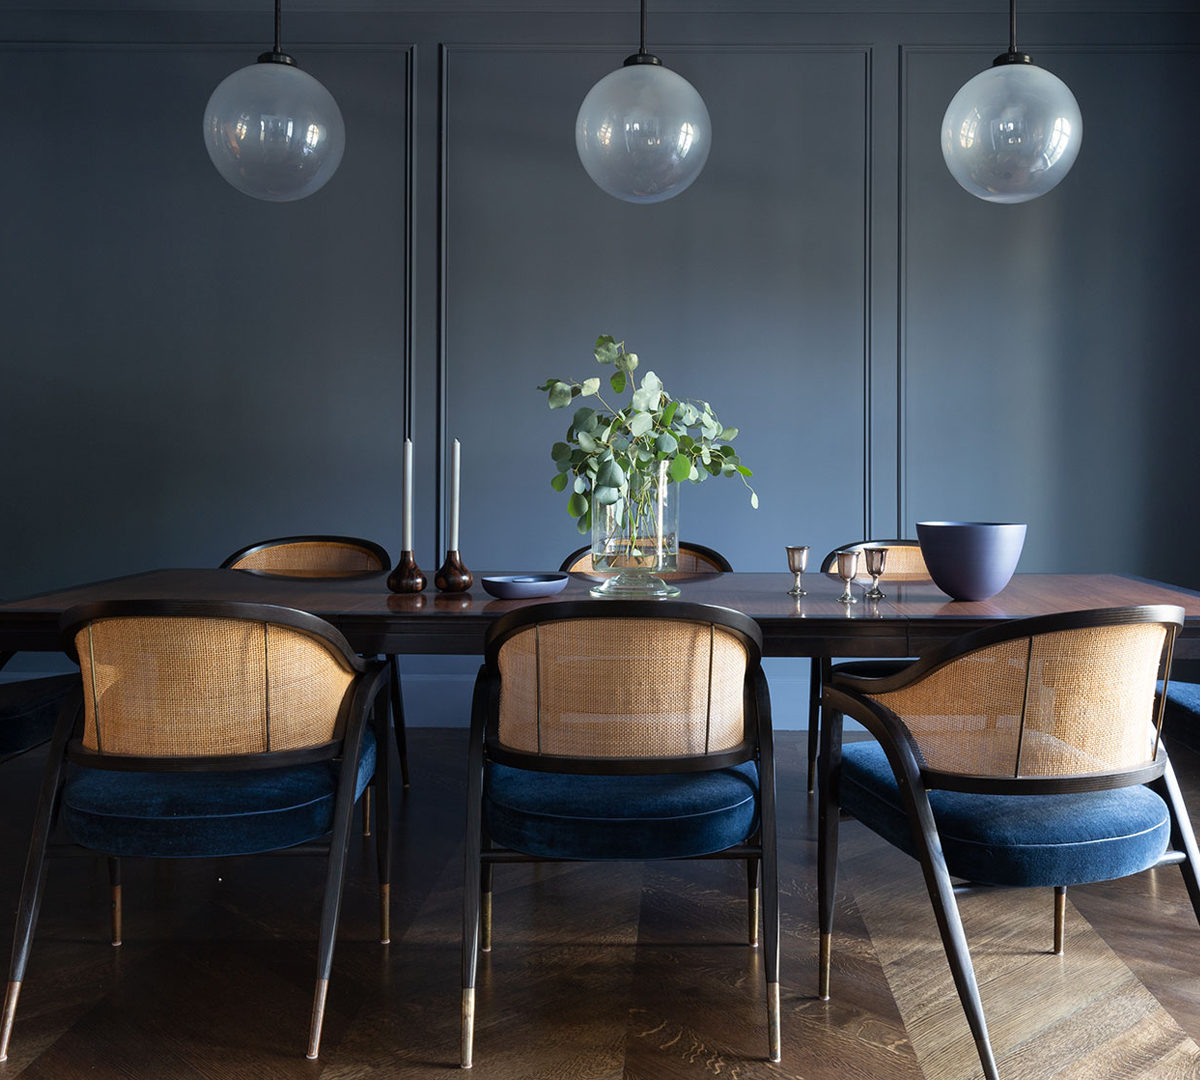 20 Dining Chairs You Will Need For A Modern Dining Room dining chairs 20 Dining Chairs You Will Need For A Modern Dining Room hilliard locust presidio heights ii dining room 1200x1080 1